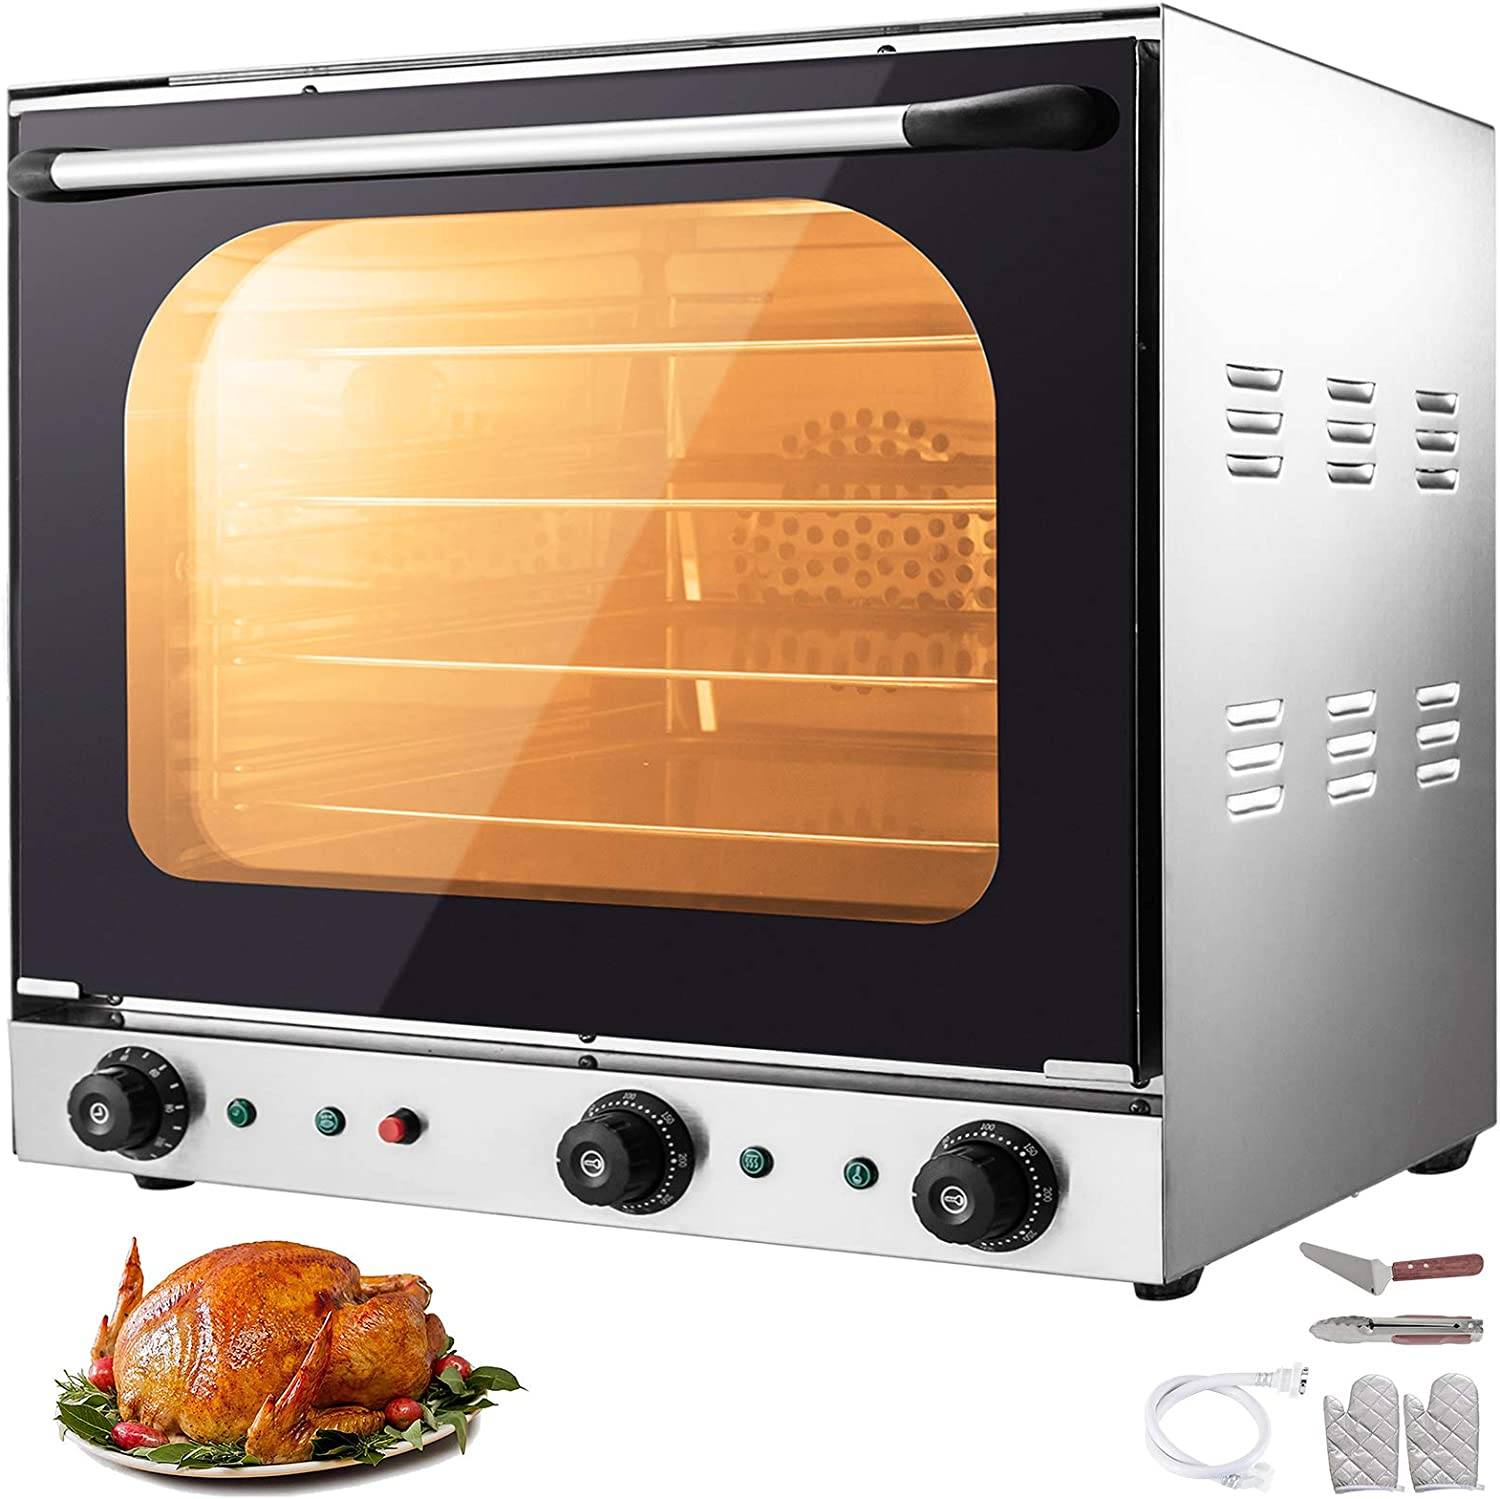 VBENLEM-110V-Commercial-Convection-Oven-60L/2.12-Cu.ft-Capacity-2600W-Electric-Toaster-Oven-50-350℃-Multifunction-Oven-4-Tier-with-Spray-Function